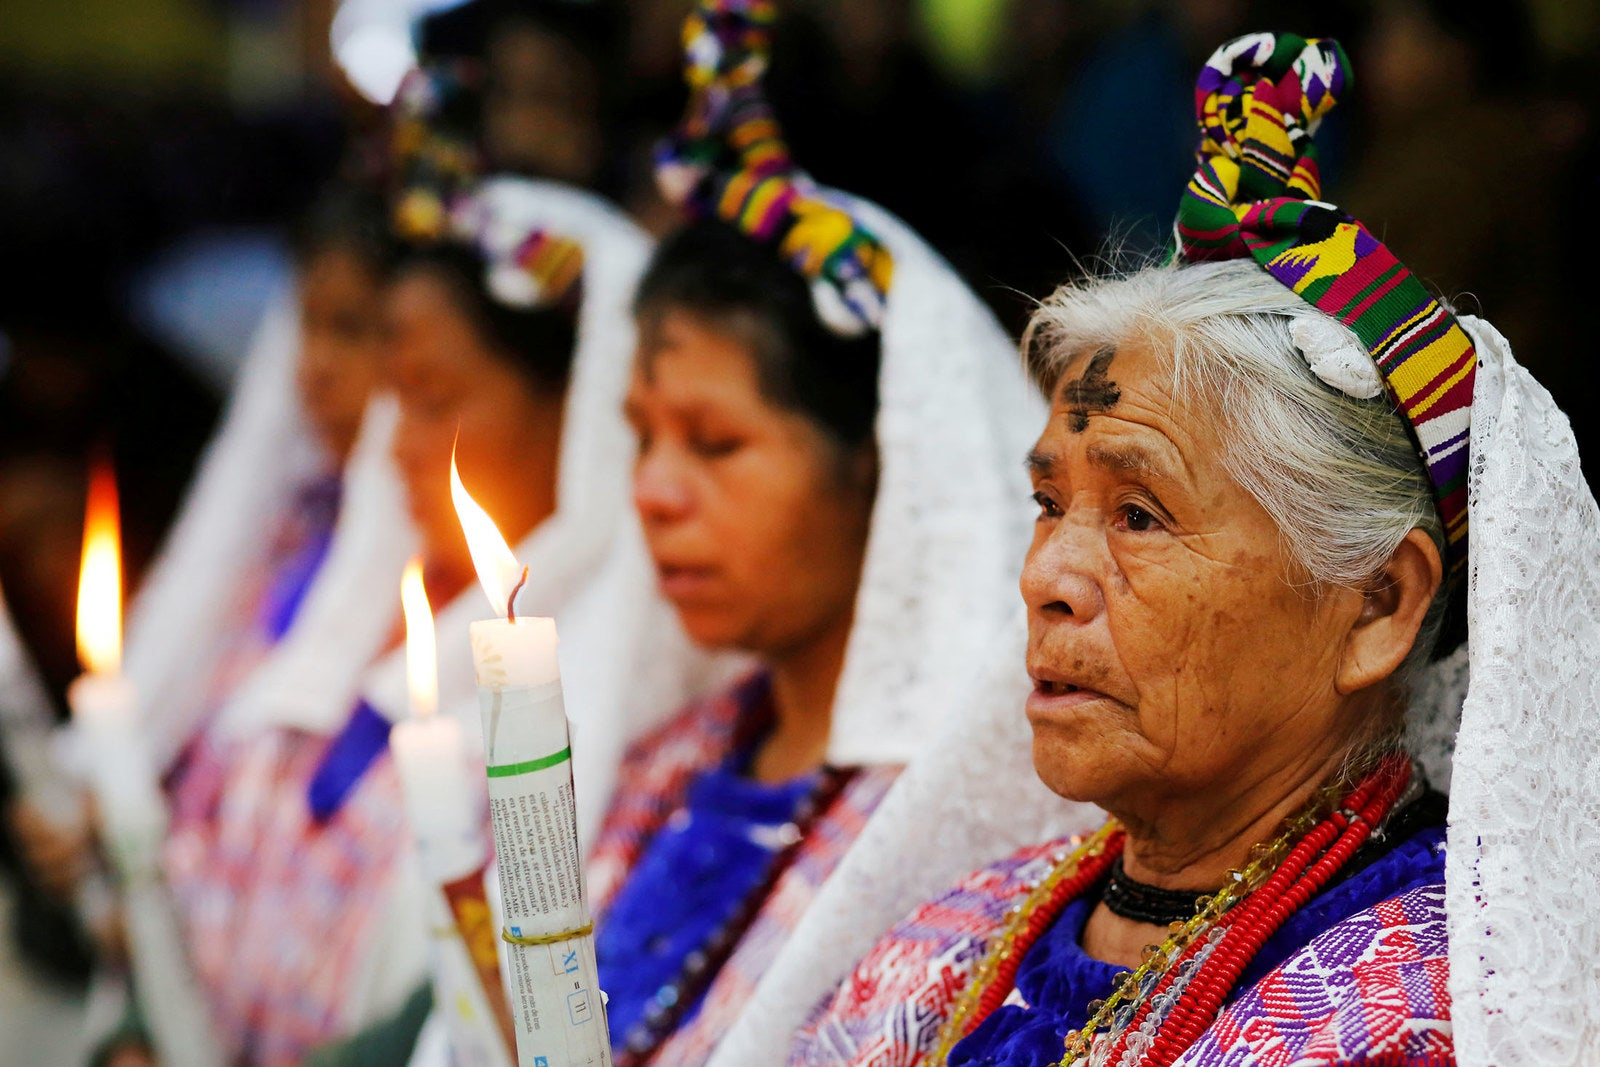 Indigenous Mayan women, with a cross of ashes on their foreheads, attend an Ash Wednesday mass in the municipality of San Juan Sacatepéquez, Guatemala, on Feb. 14.